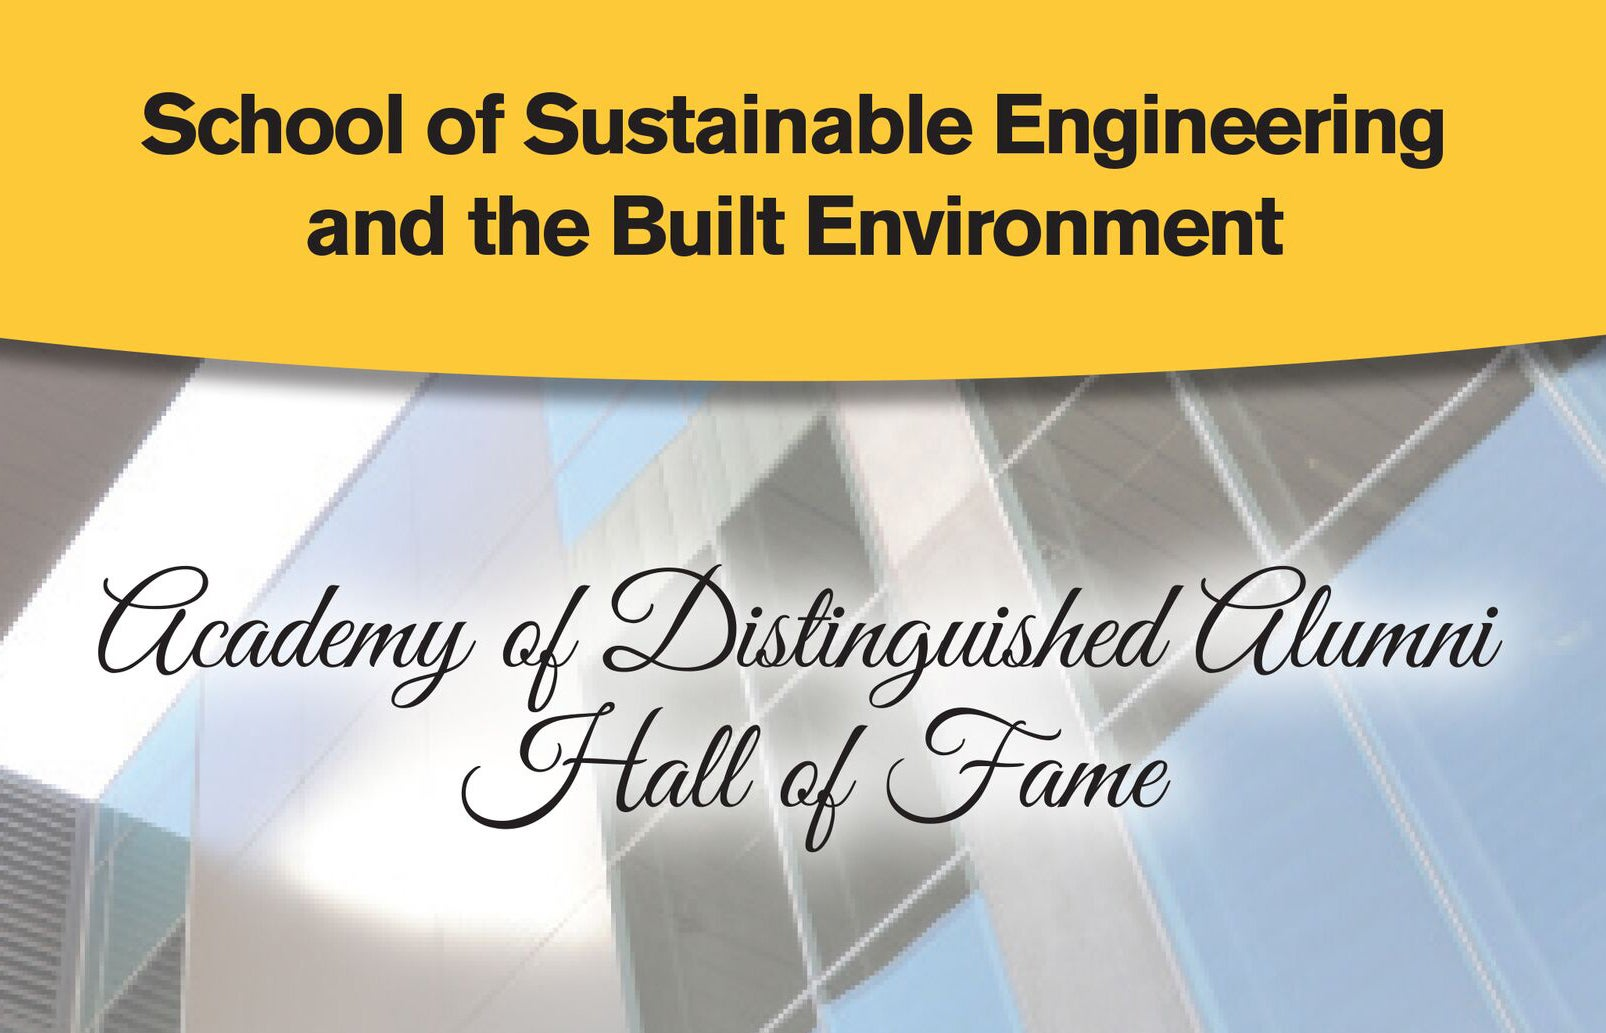 School of Sustainable Engineering and the Built Environment's  Academy of Distinguished Alumni Hall of Fame